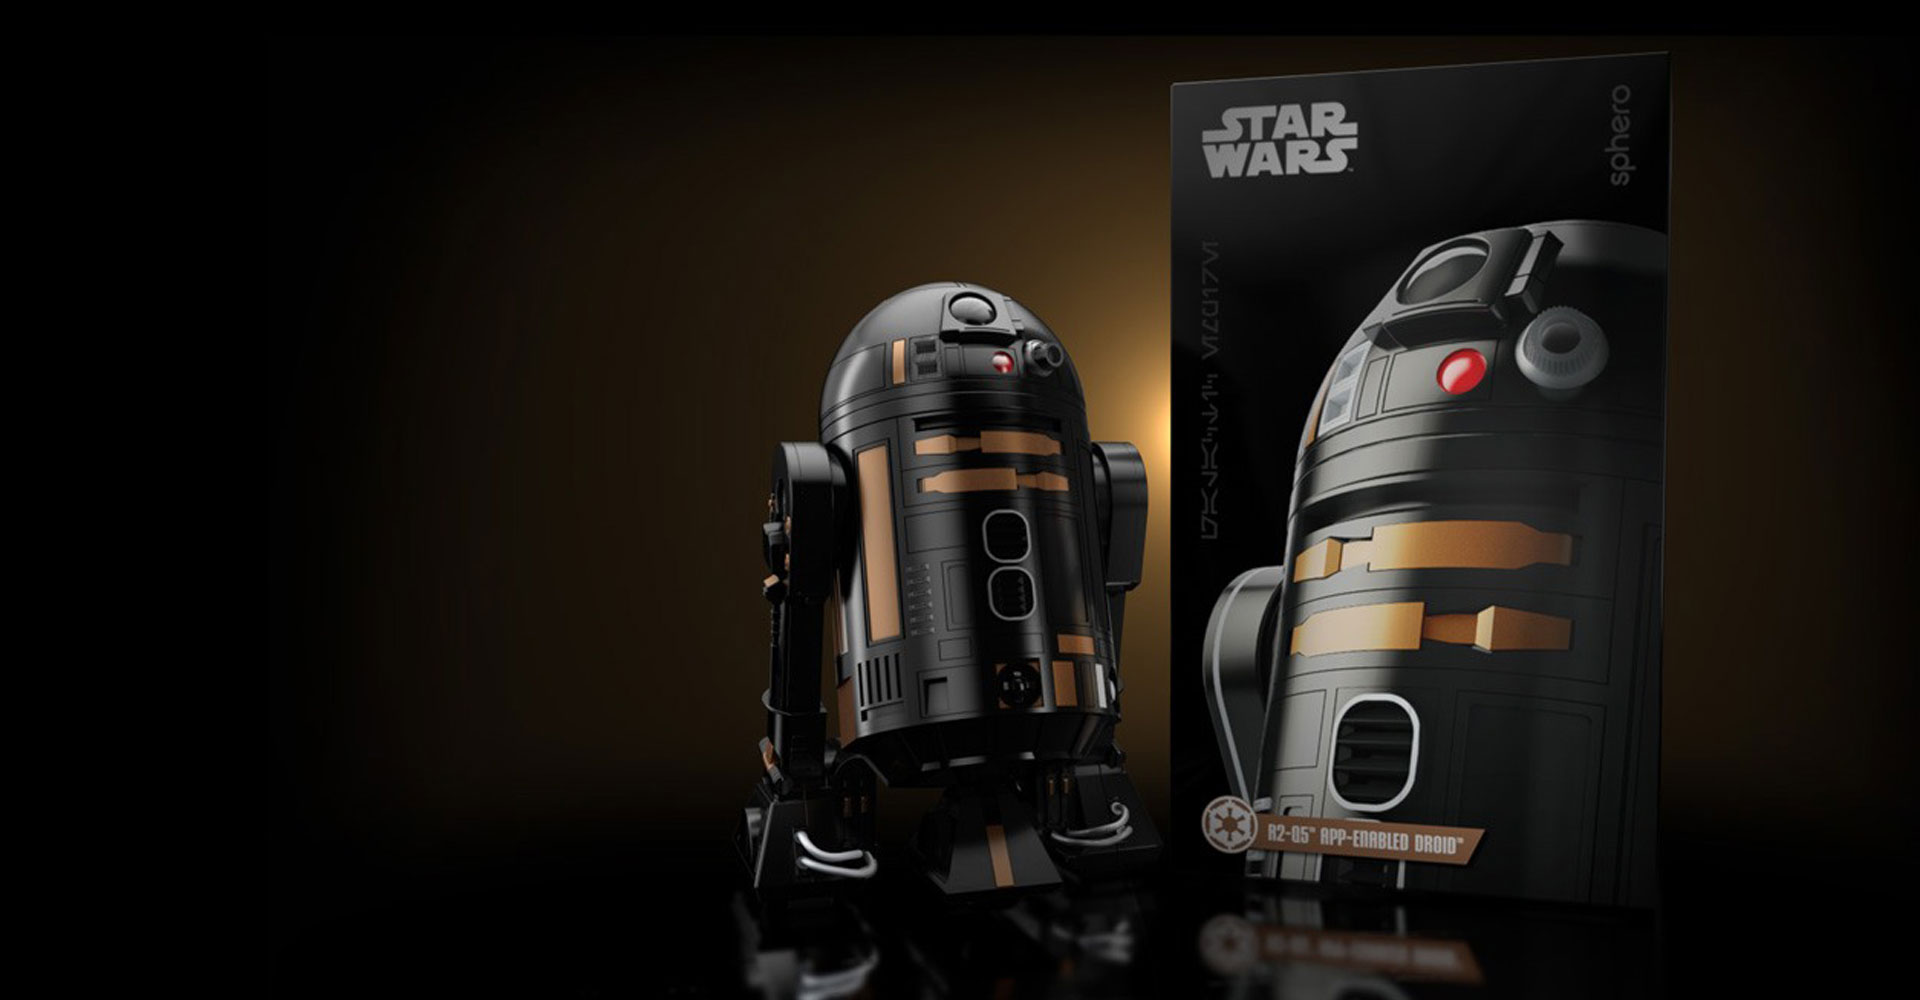 The Force is with Tracey W. Bush, audio designer for Star Wars toys